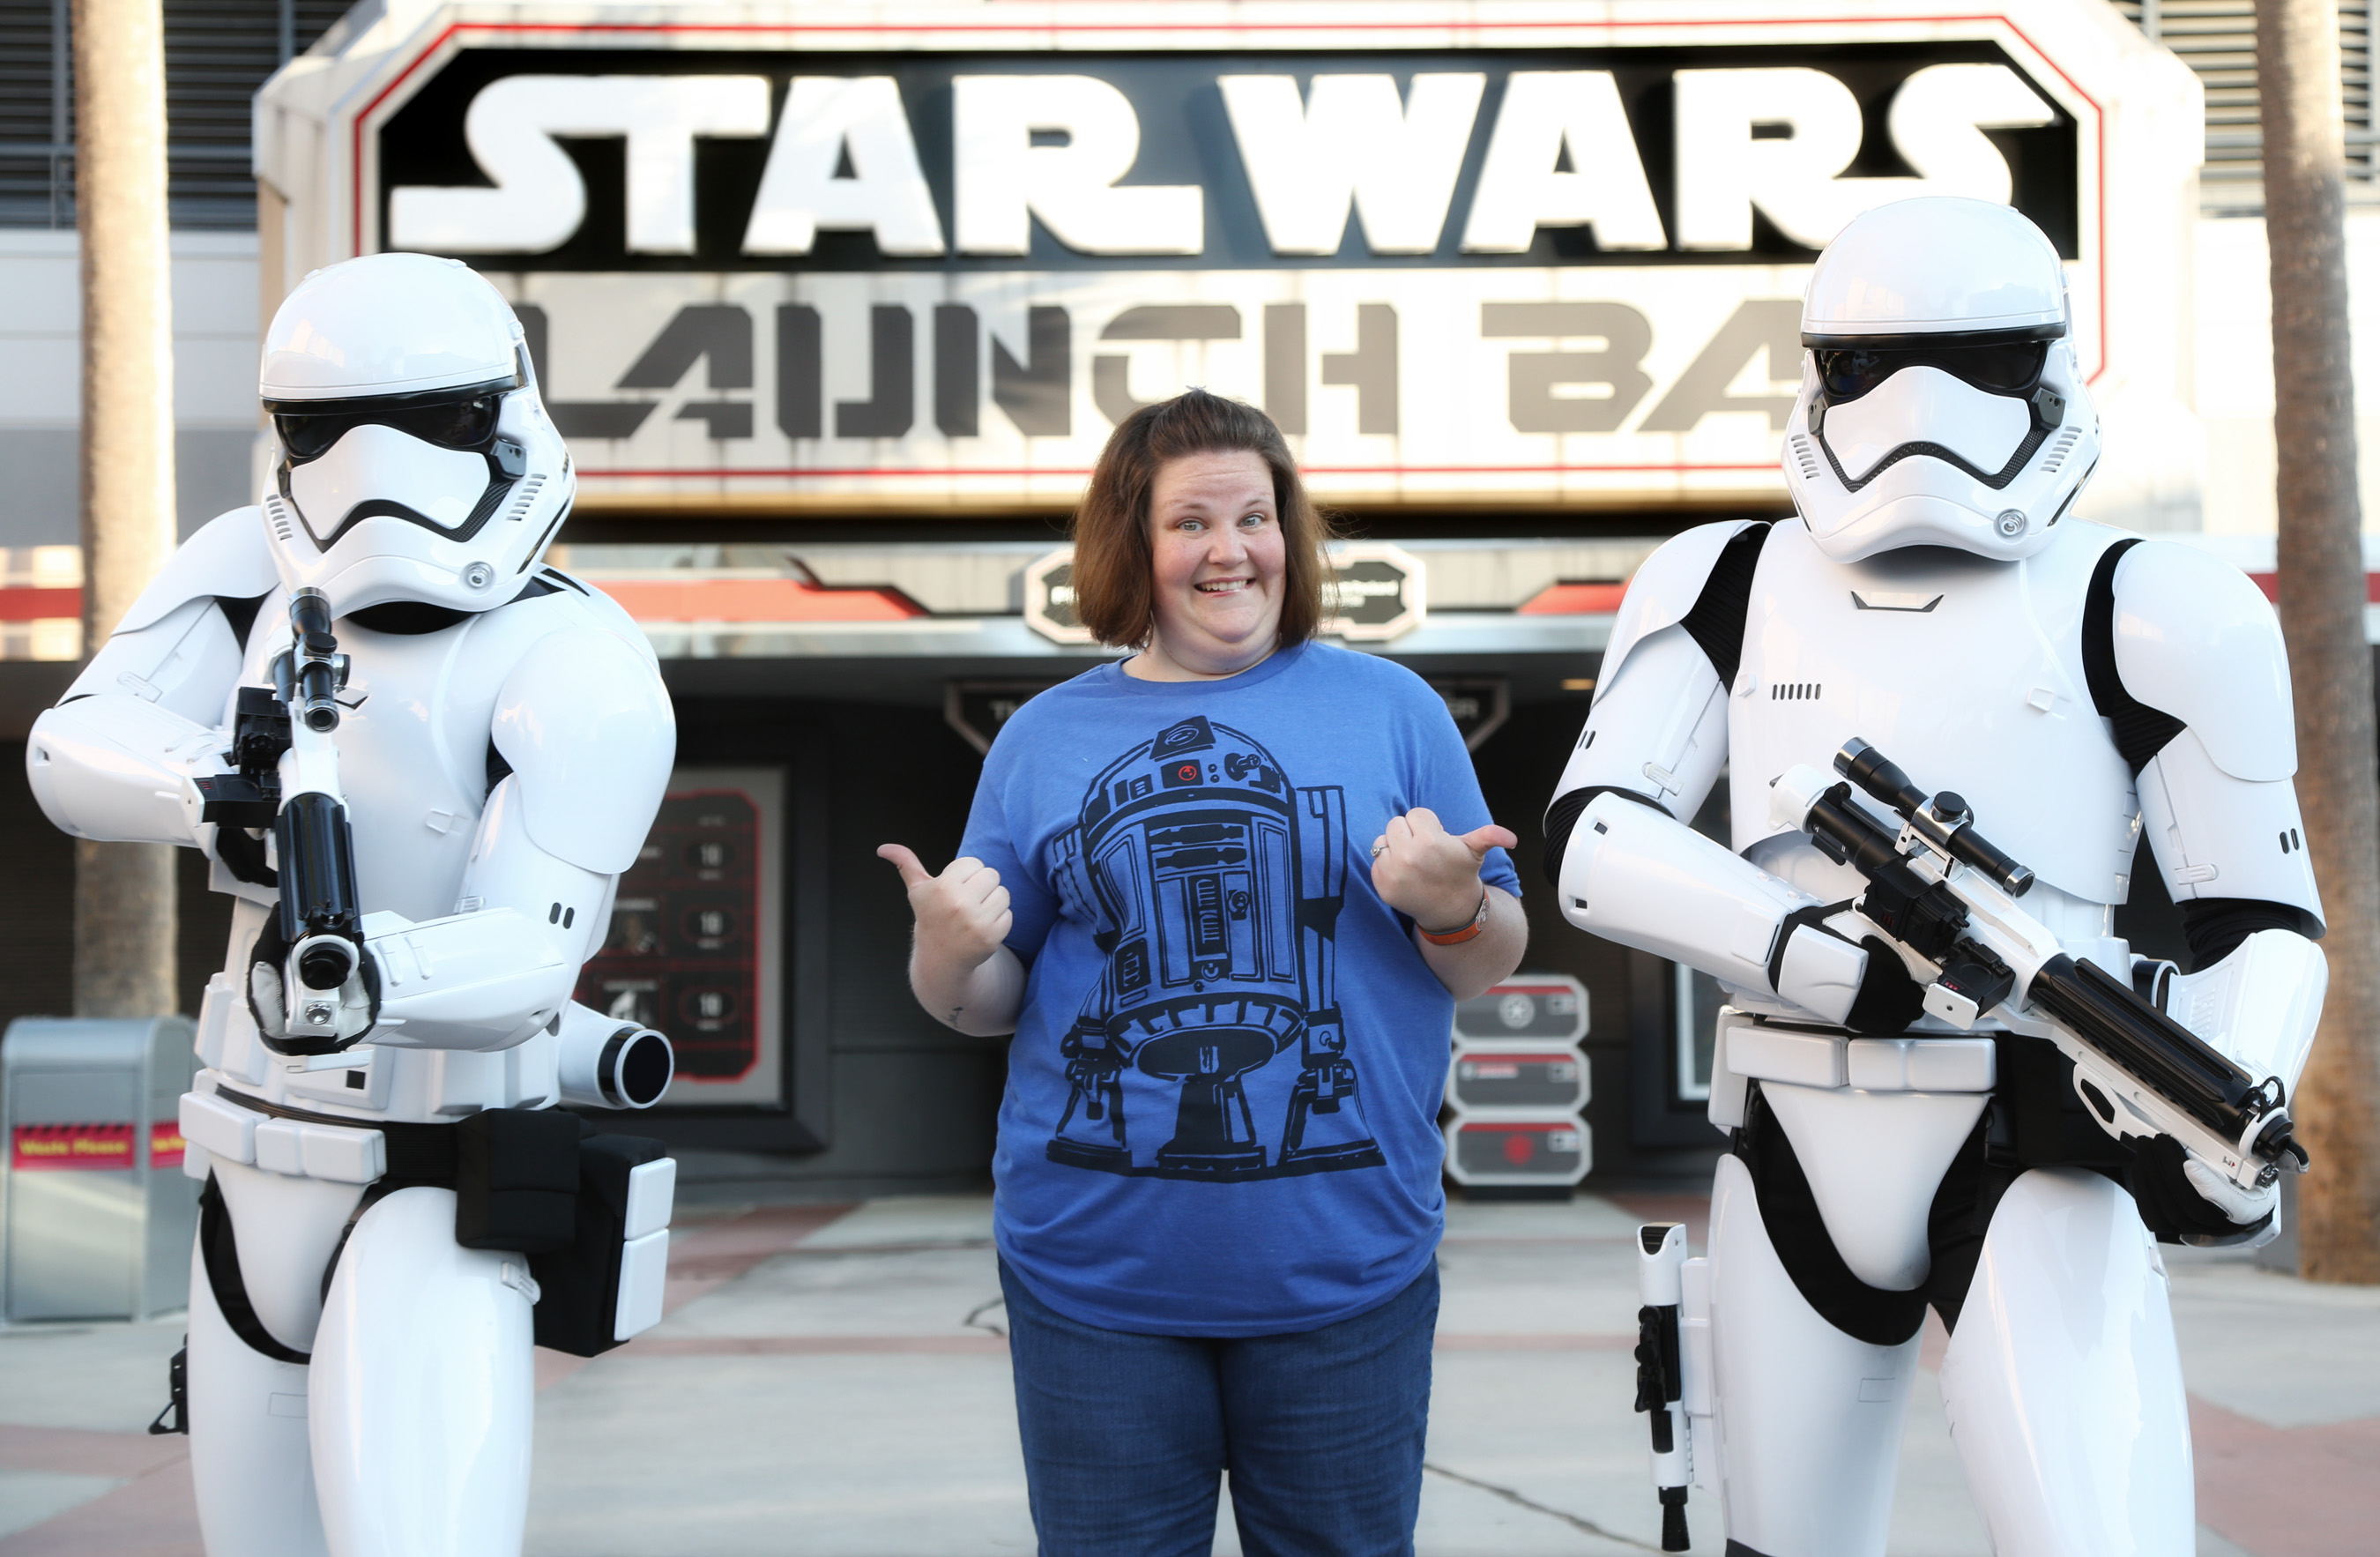 Chewbacca Mom meets Stormtroopers